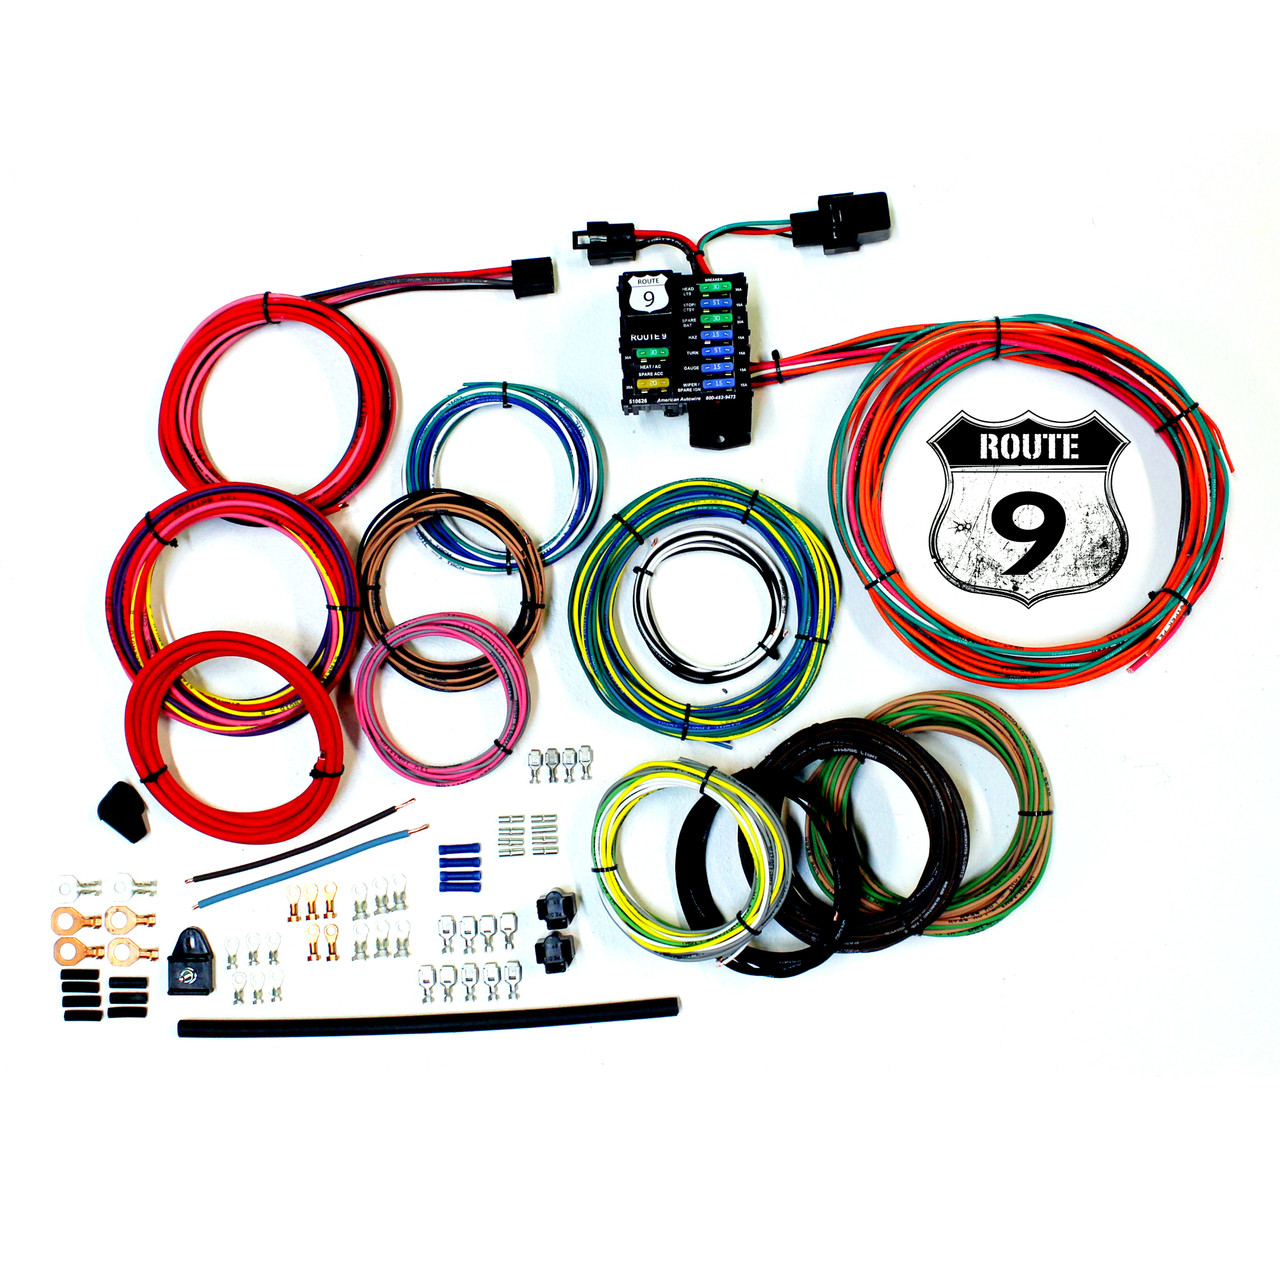 american autowire route 9 universal wiring kit so cal speed shop az aftermarket wiring kits american autowire toggle turn signal switch [ 1280 x 1280 Pixel ]